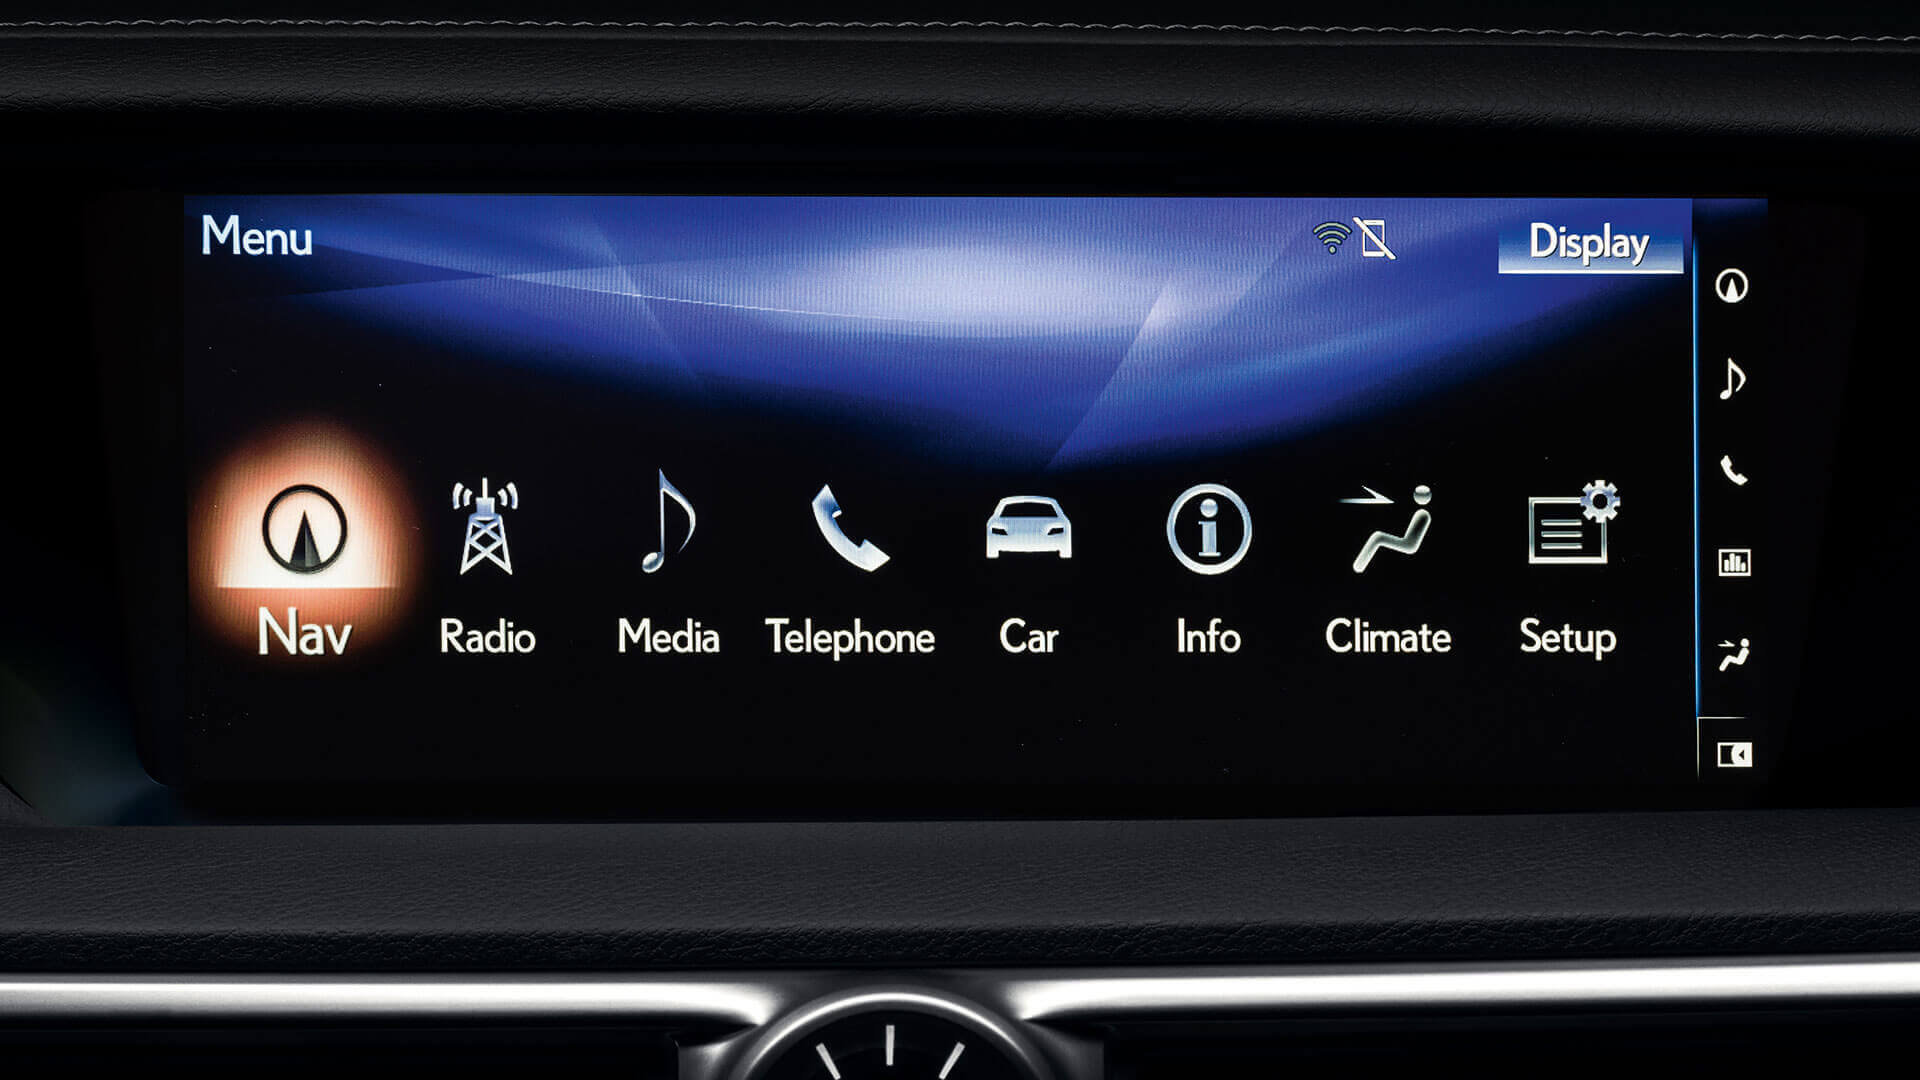 2011 lexus gs 300h features 12 3 inch multimedia display